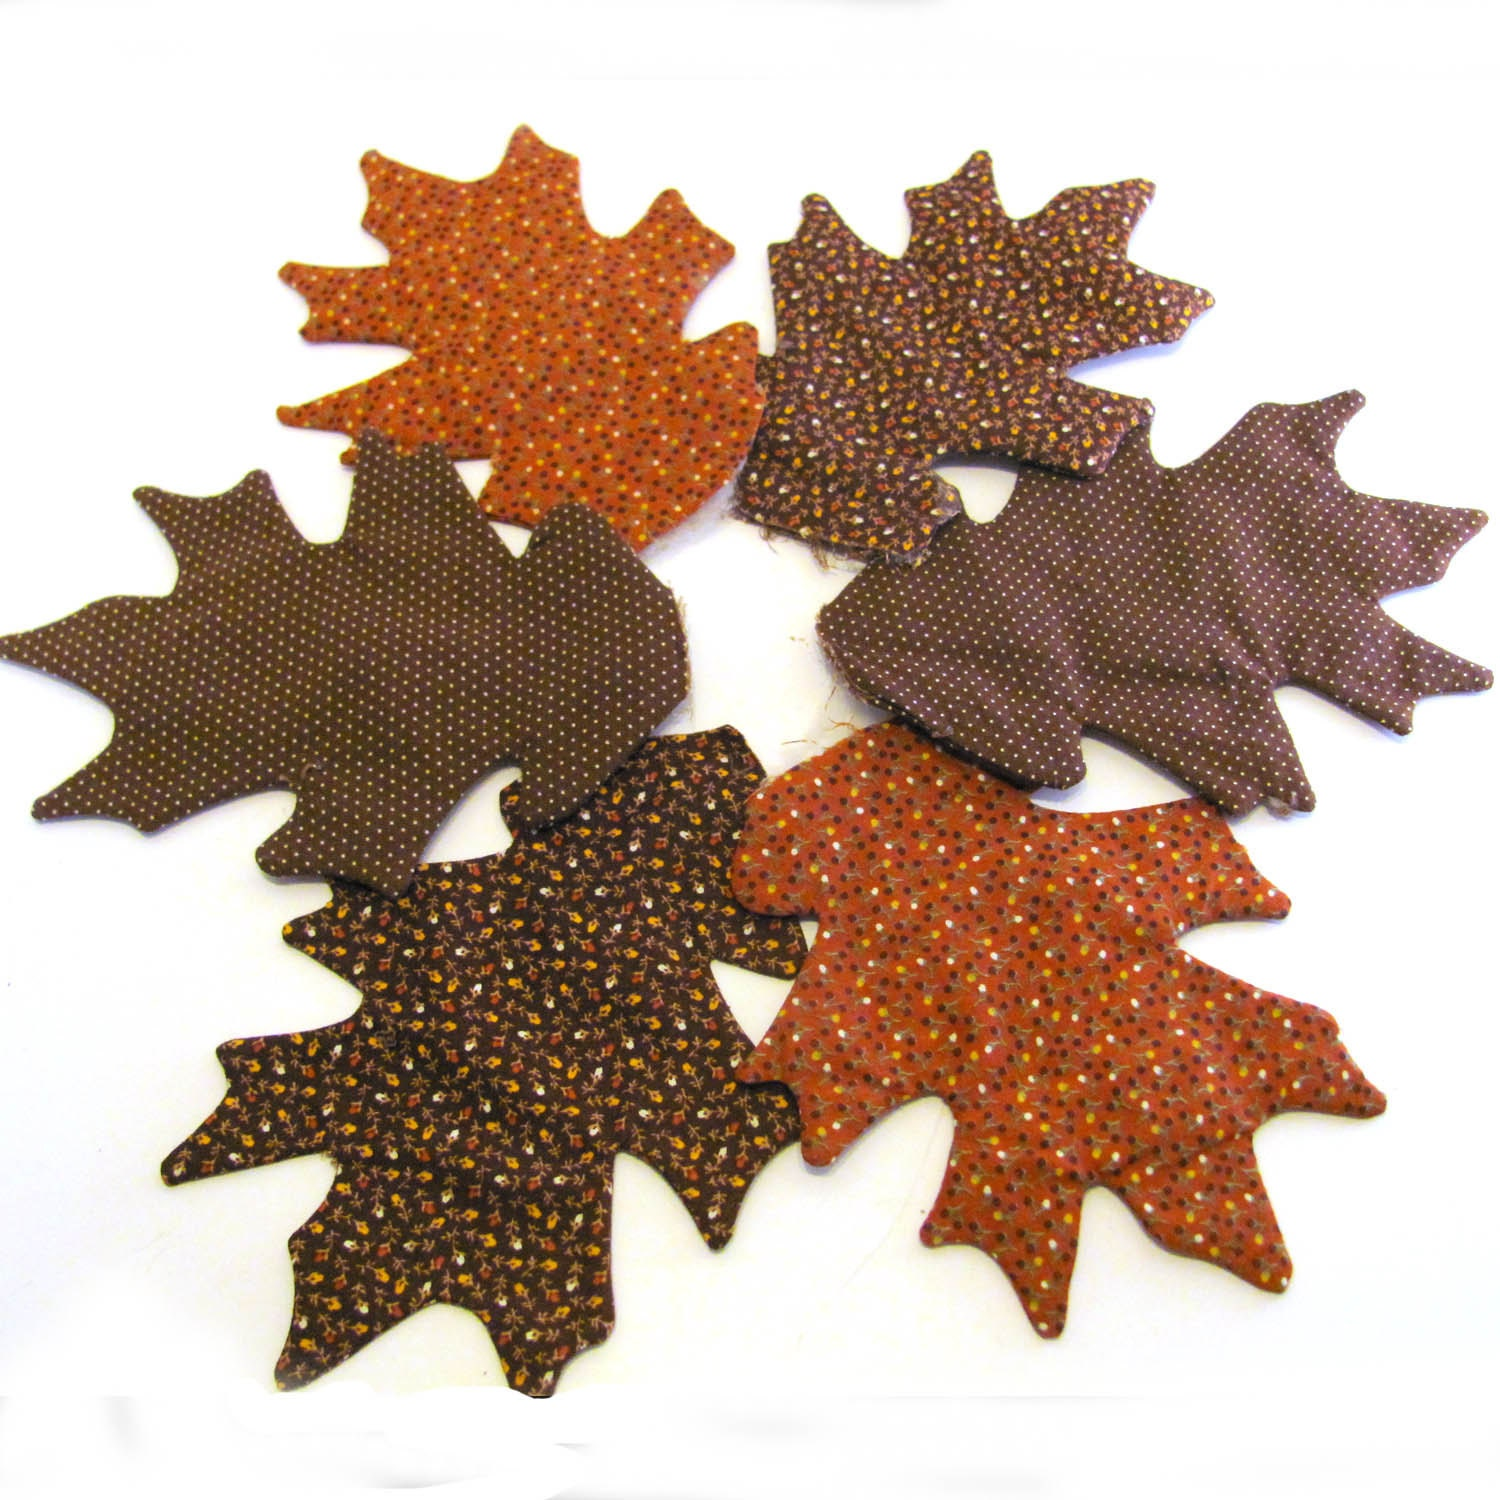 Fall fabric leaves ready for applique